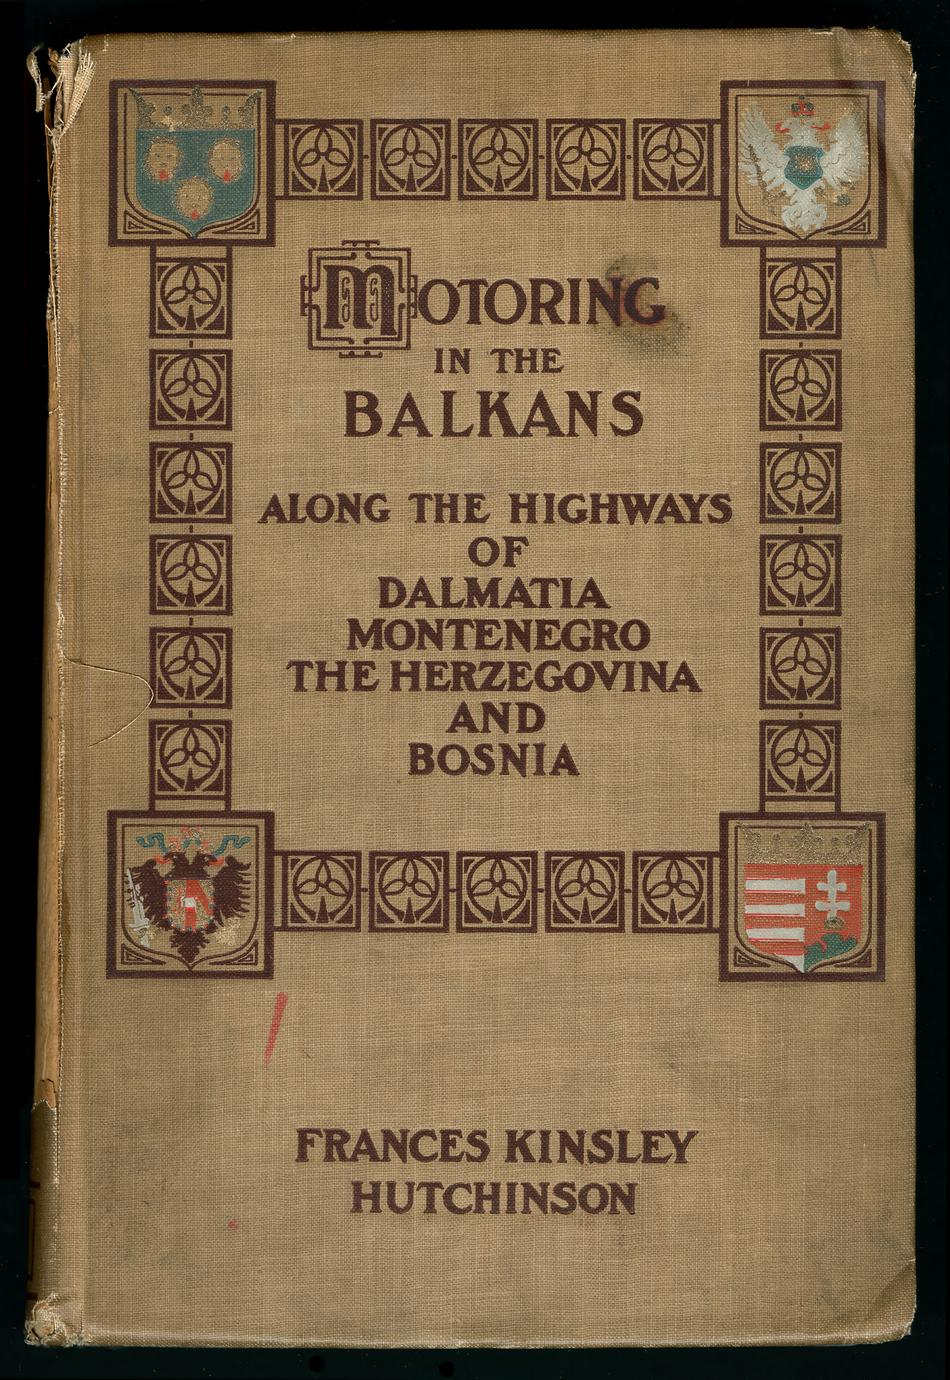 Motoring in the Balkans along the highways of Dalmatia, Montenegro, the Herzegovina and Bosnia (1 of 3)